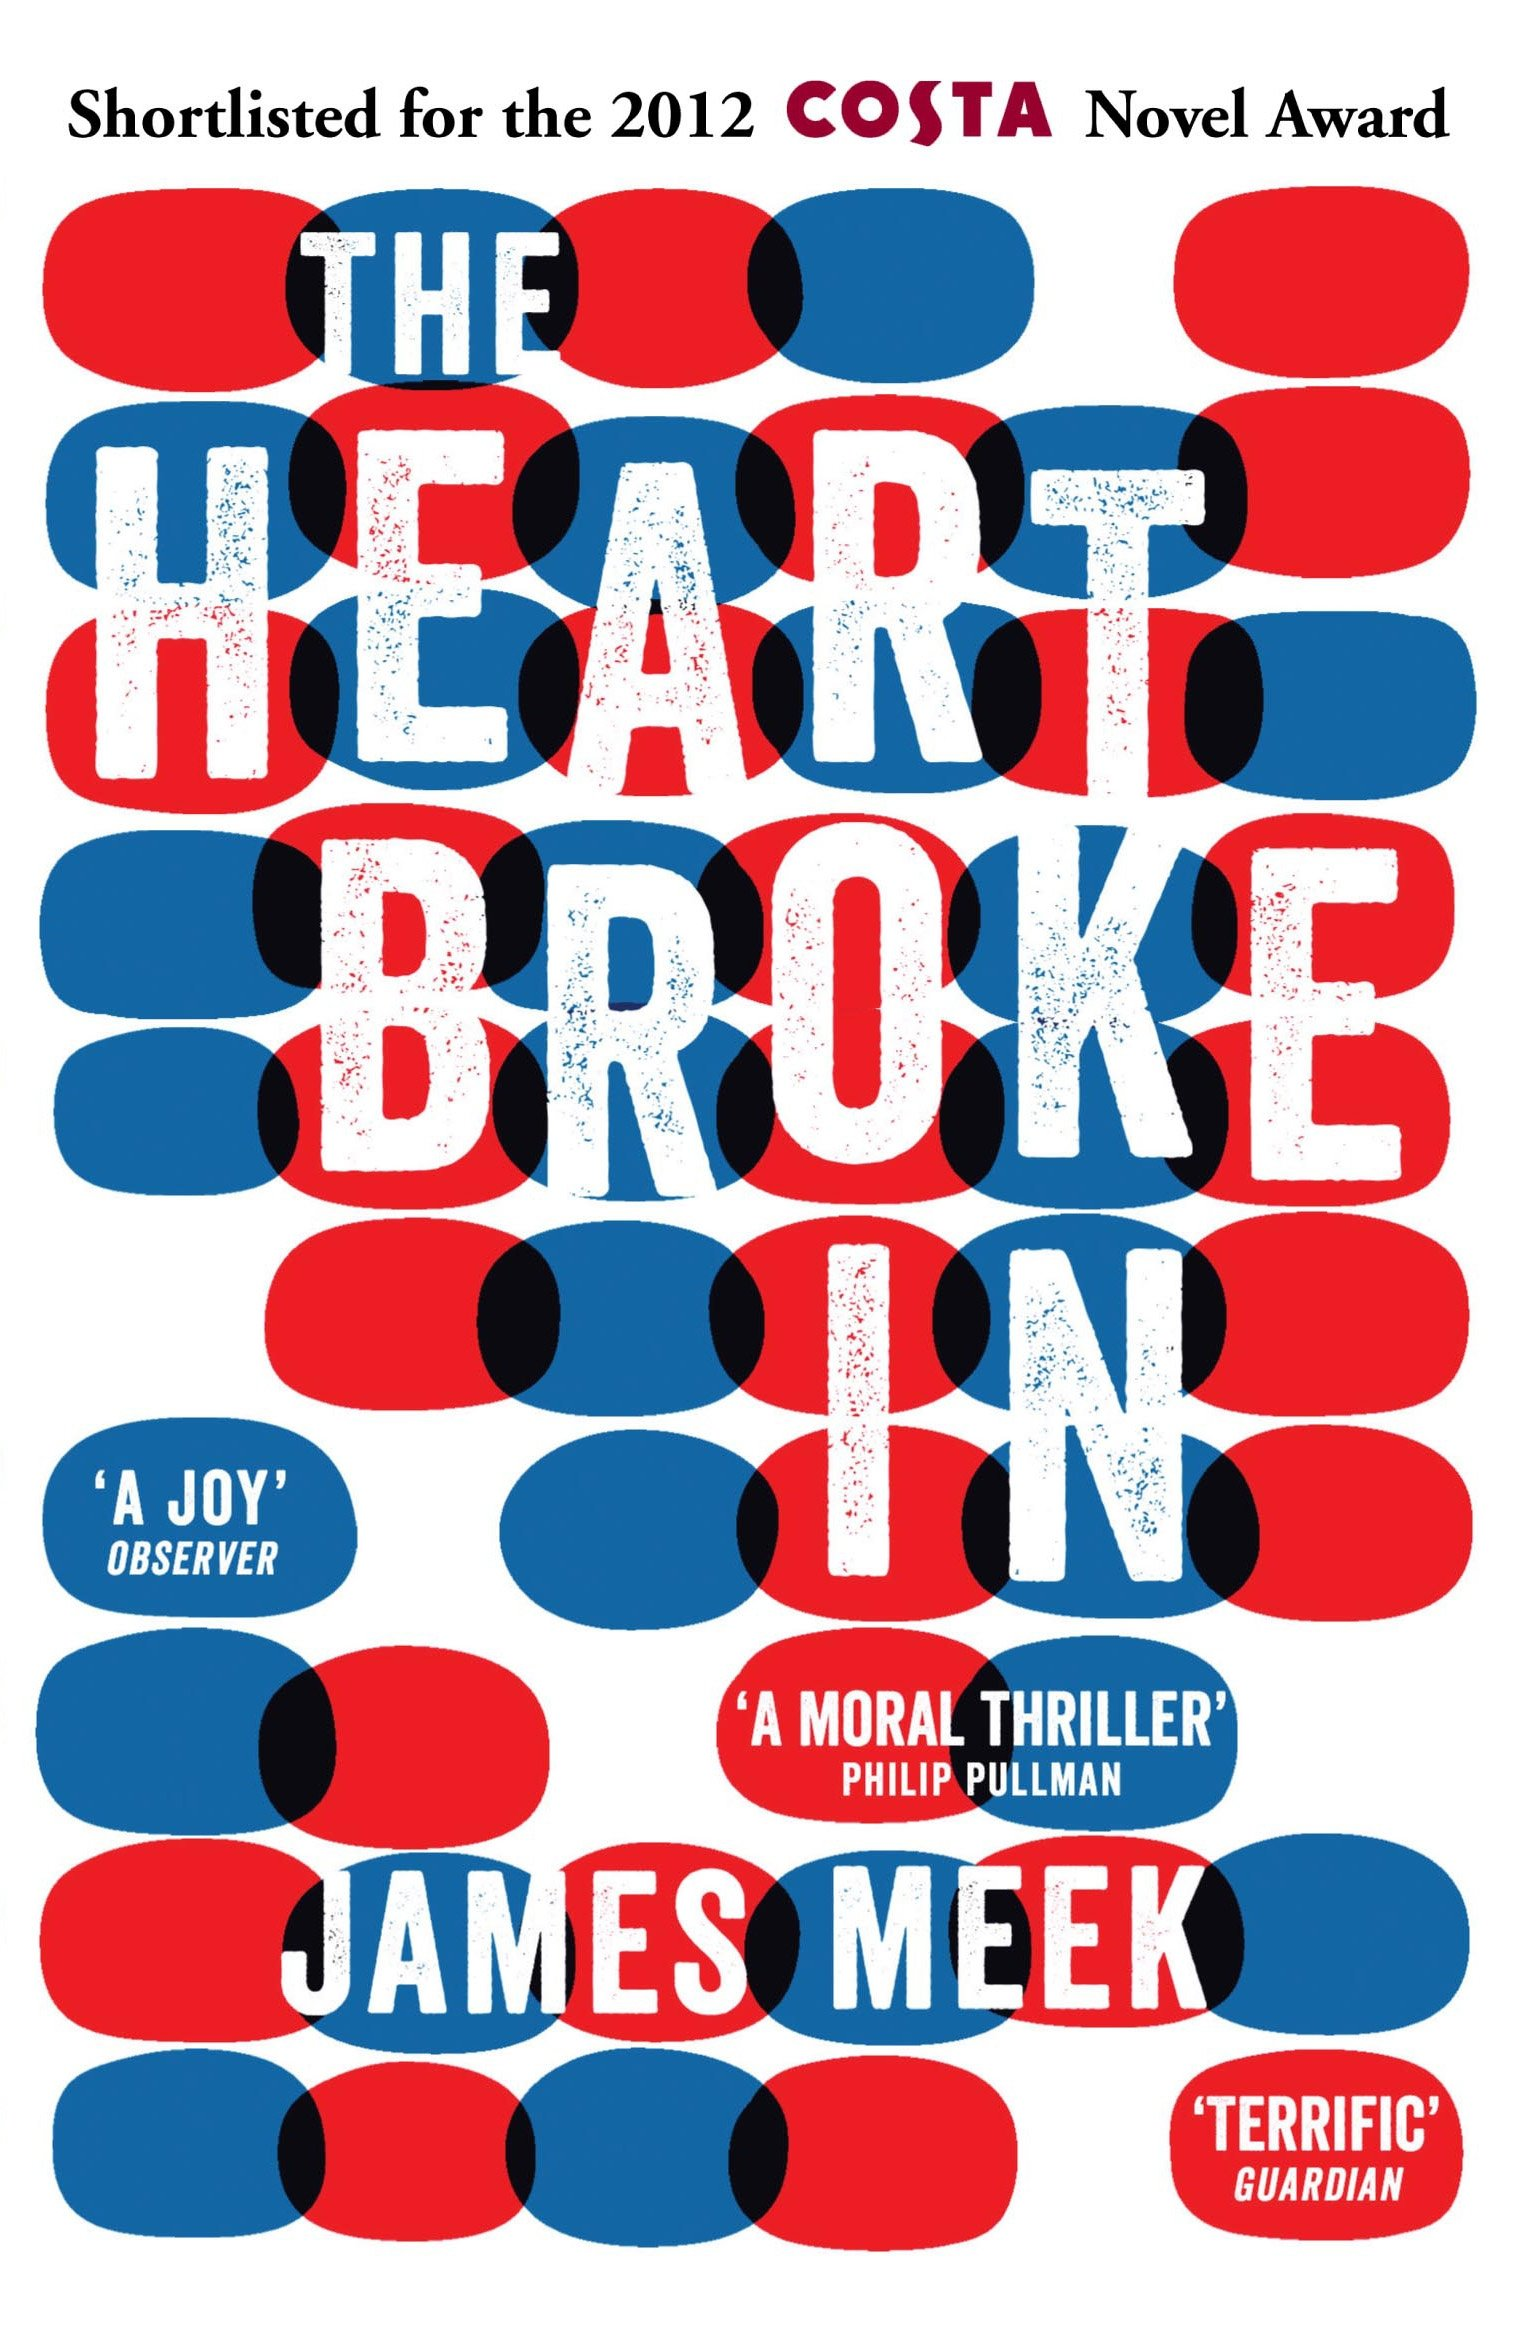 the heart broke in James Meek